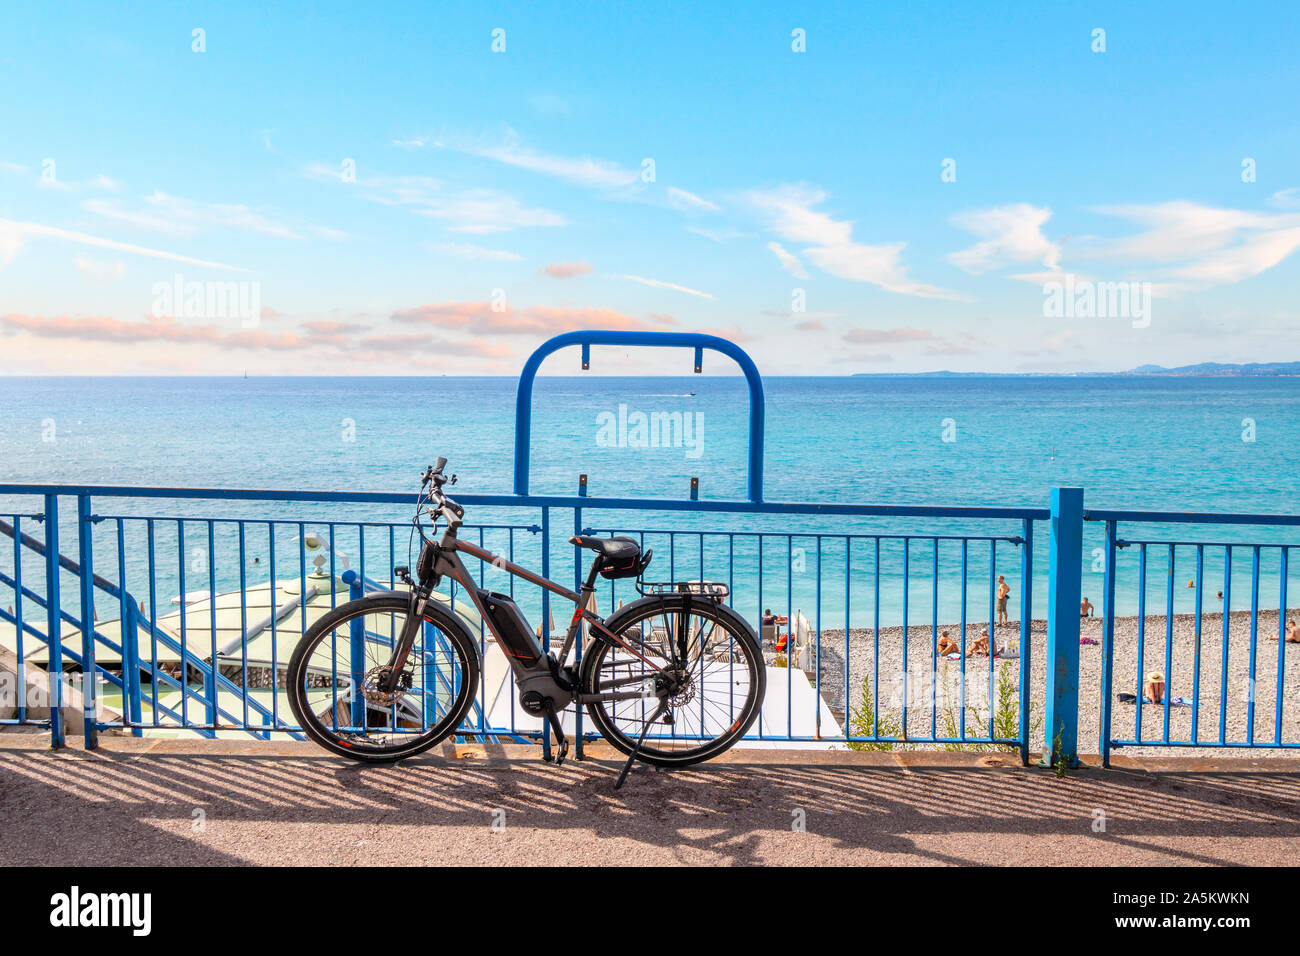 A bicycle is parked against a railing on the Promenade des Anglais with the Turquoise waters of the Bay of Angles behind in Nice, France. Stock Photo